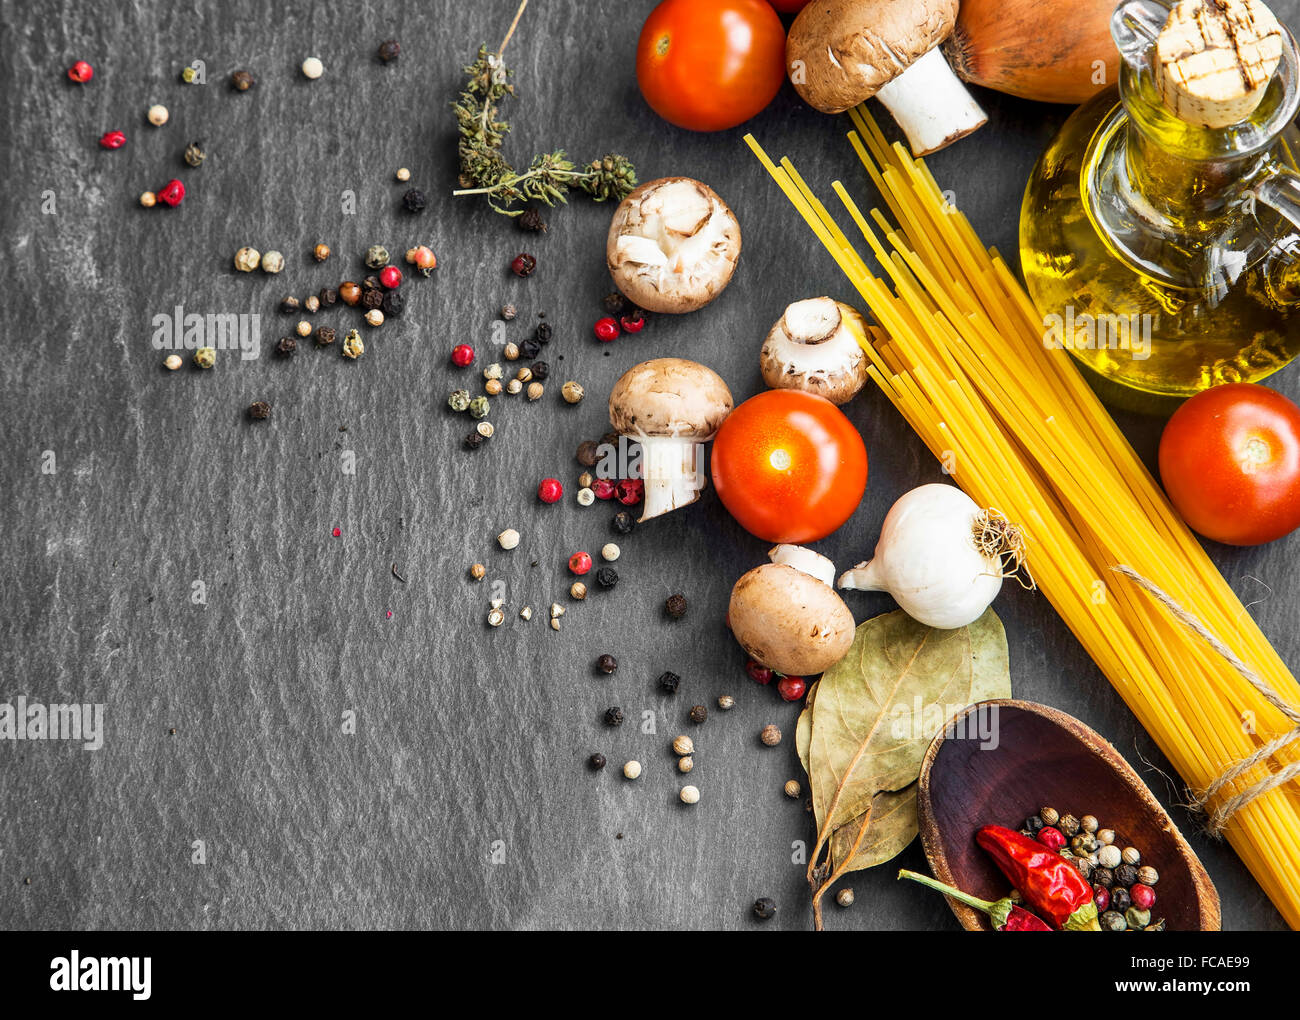 Italian meal ingredients with pasta,spices,tomatoes,olive oil,mushrooms - Stock Image